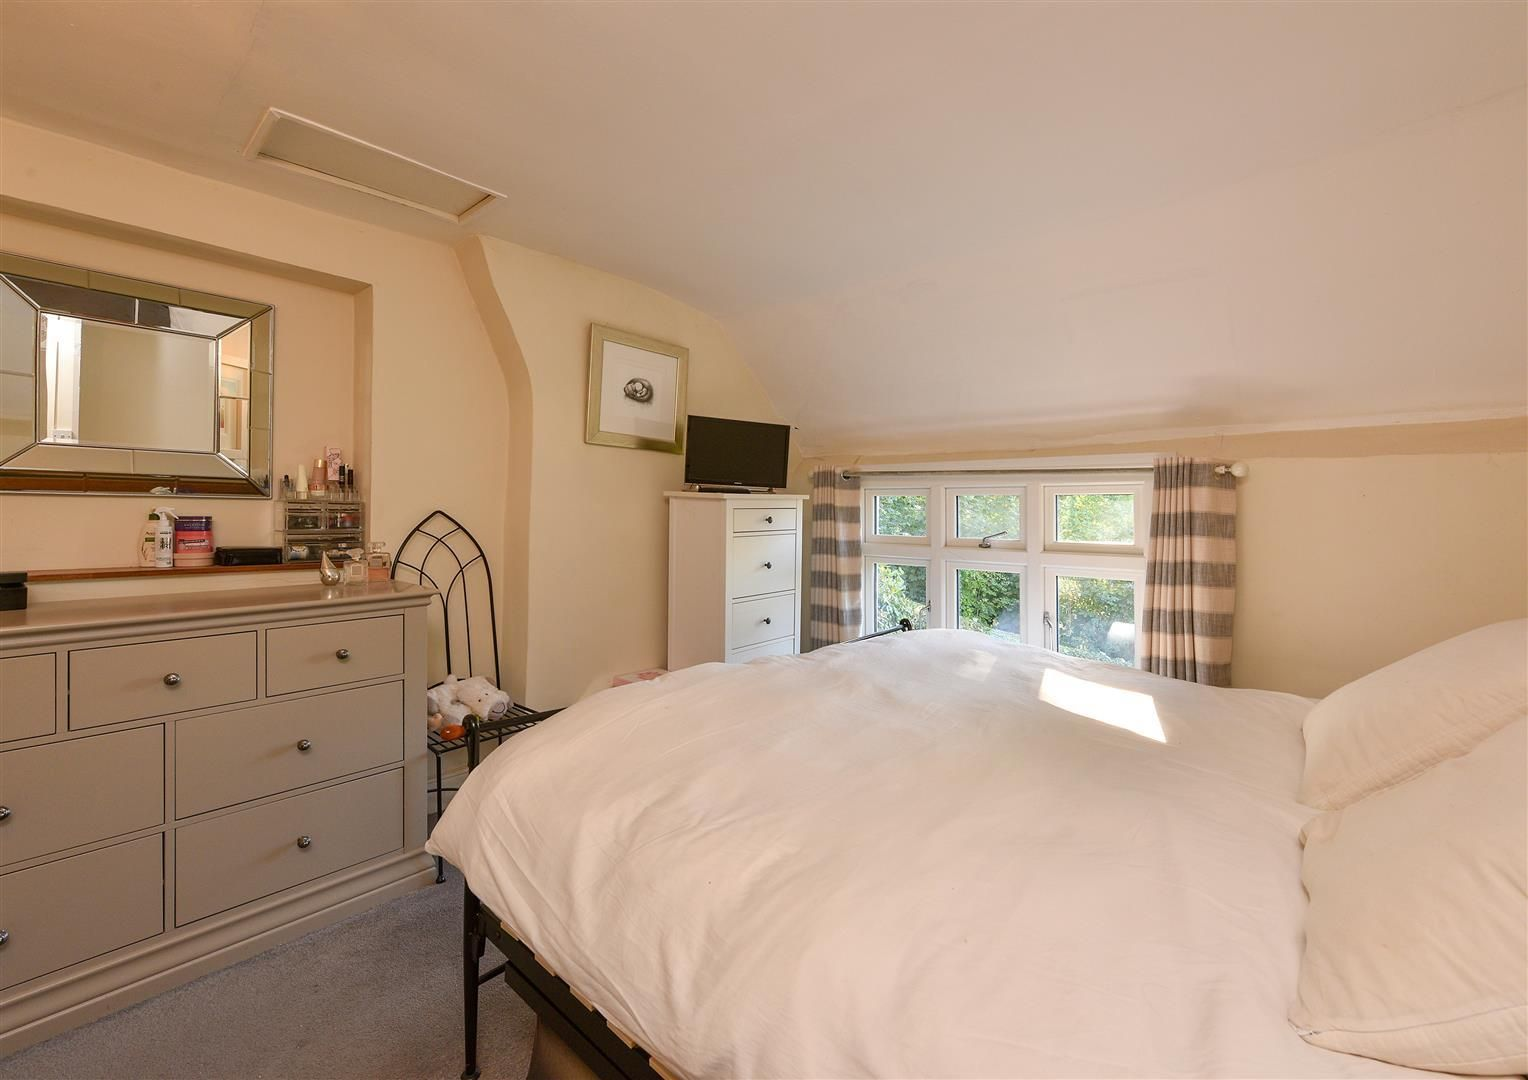 4 bed house for sale in Clent  - Property Image 19